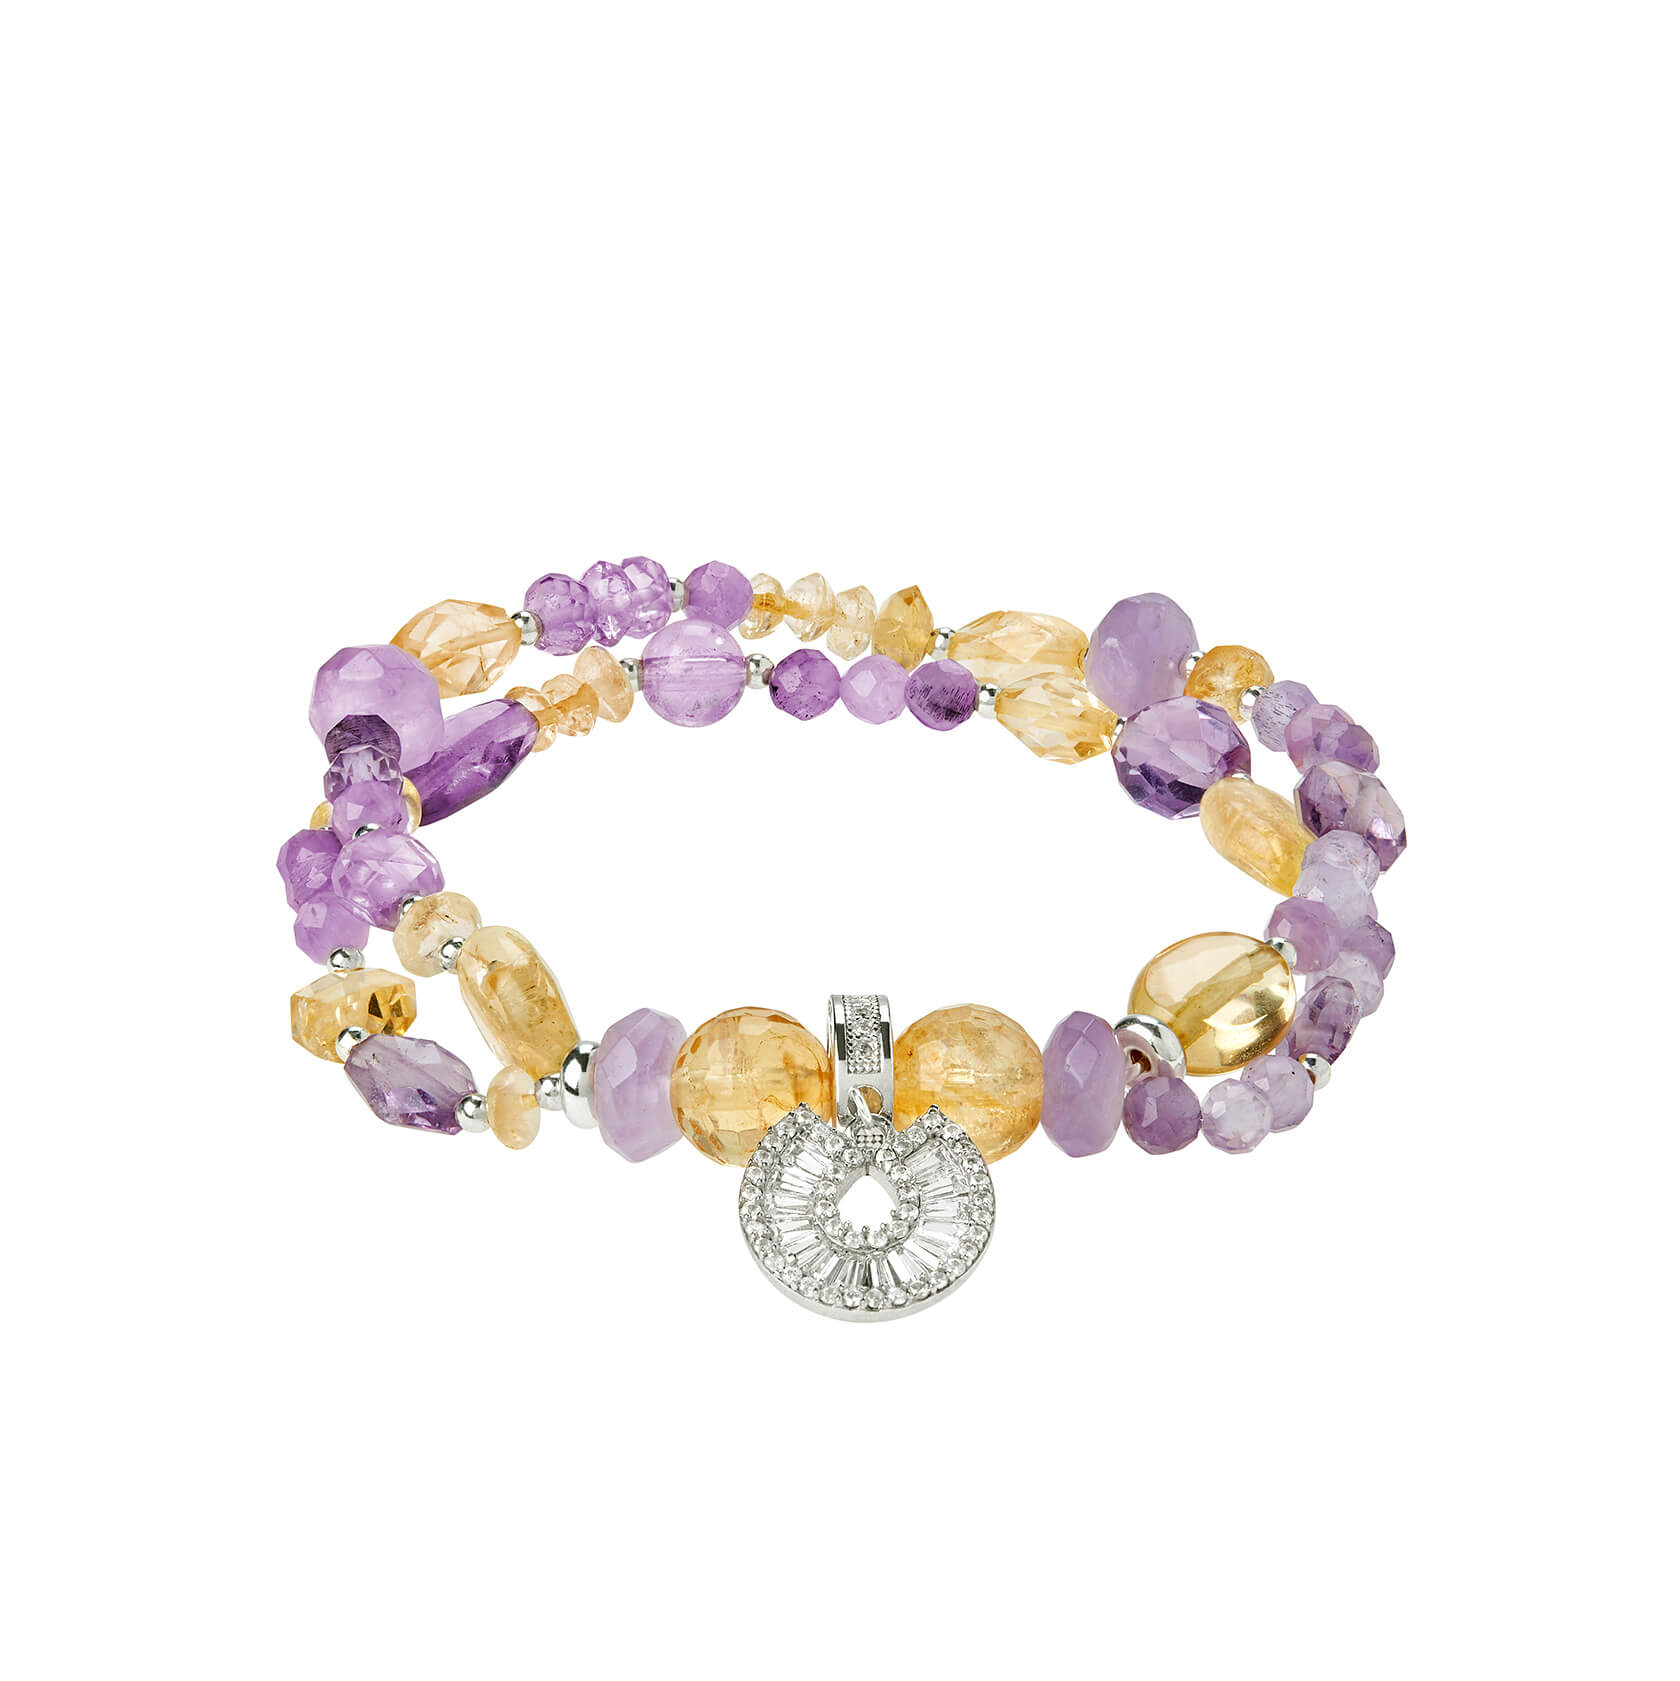 Citrine and amethyst double bracelet